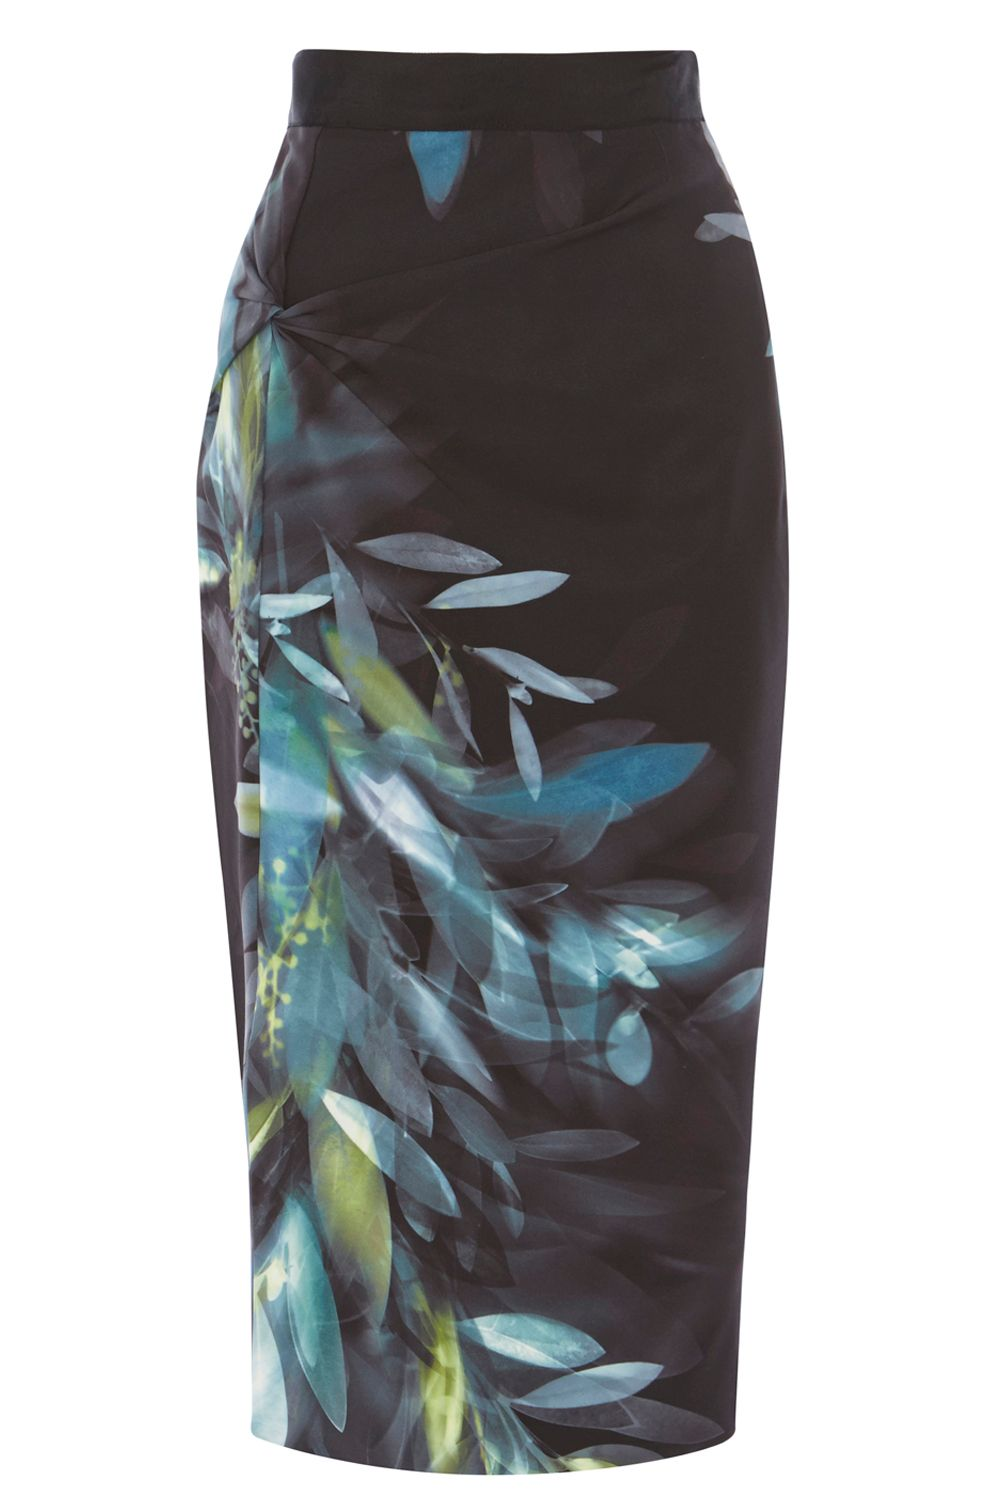 Coast Coast Morselli Printed Pencil Skirt, Multi-Coloured